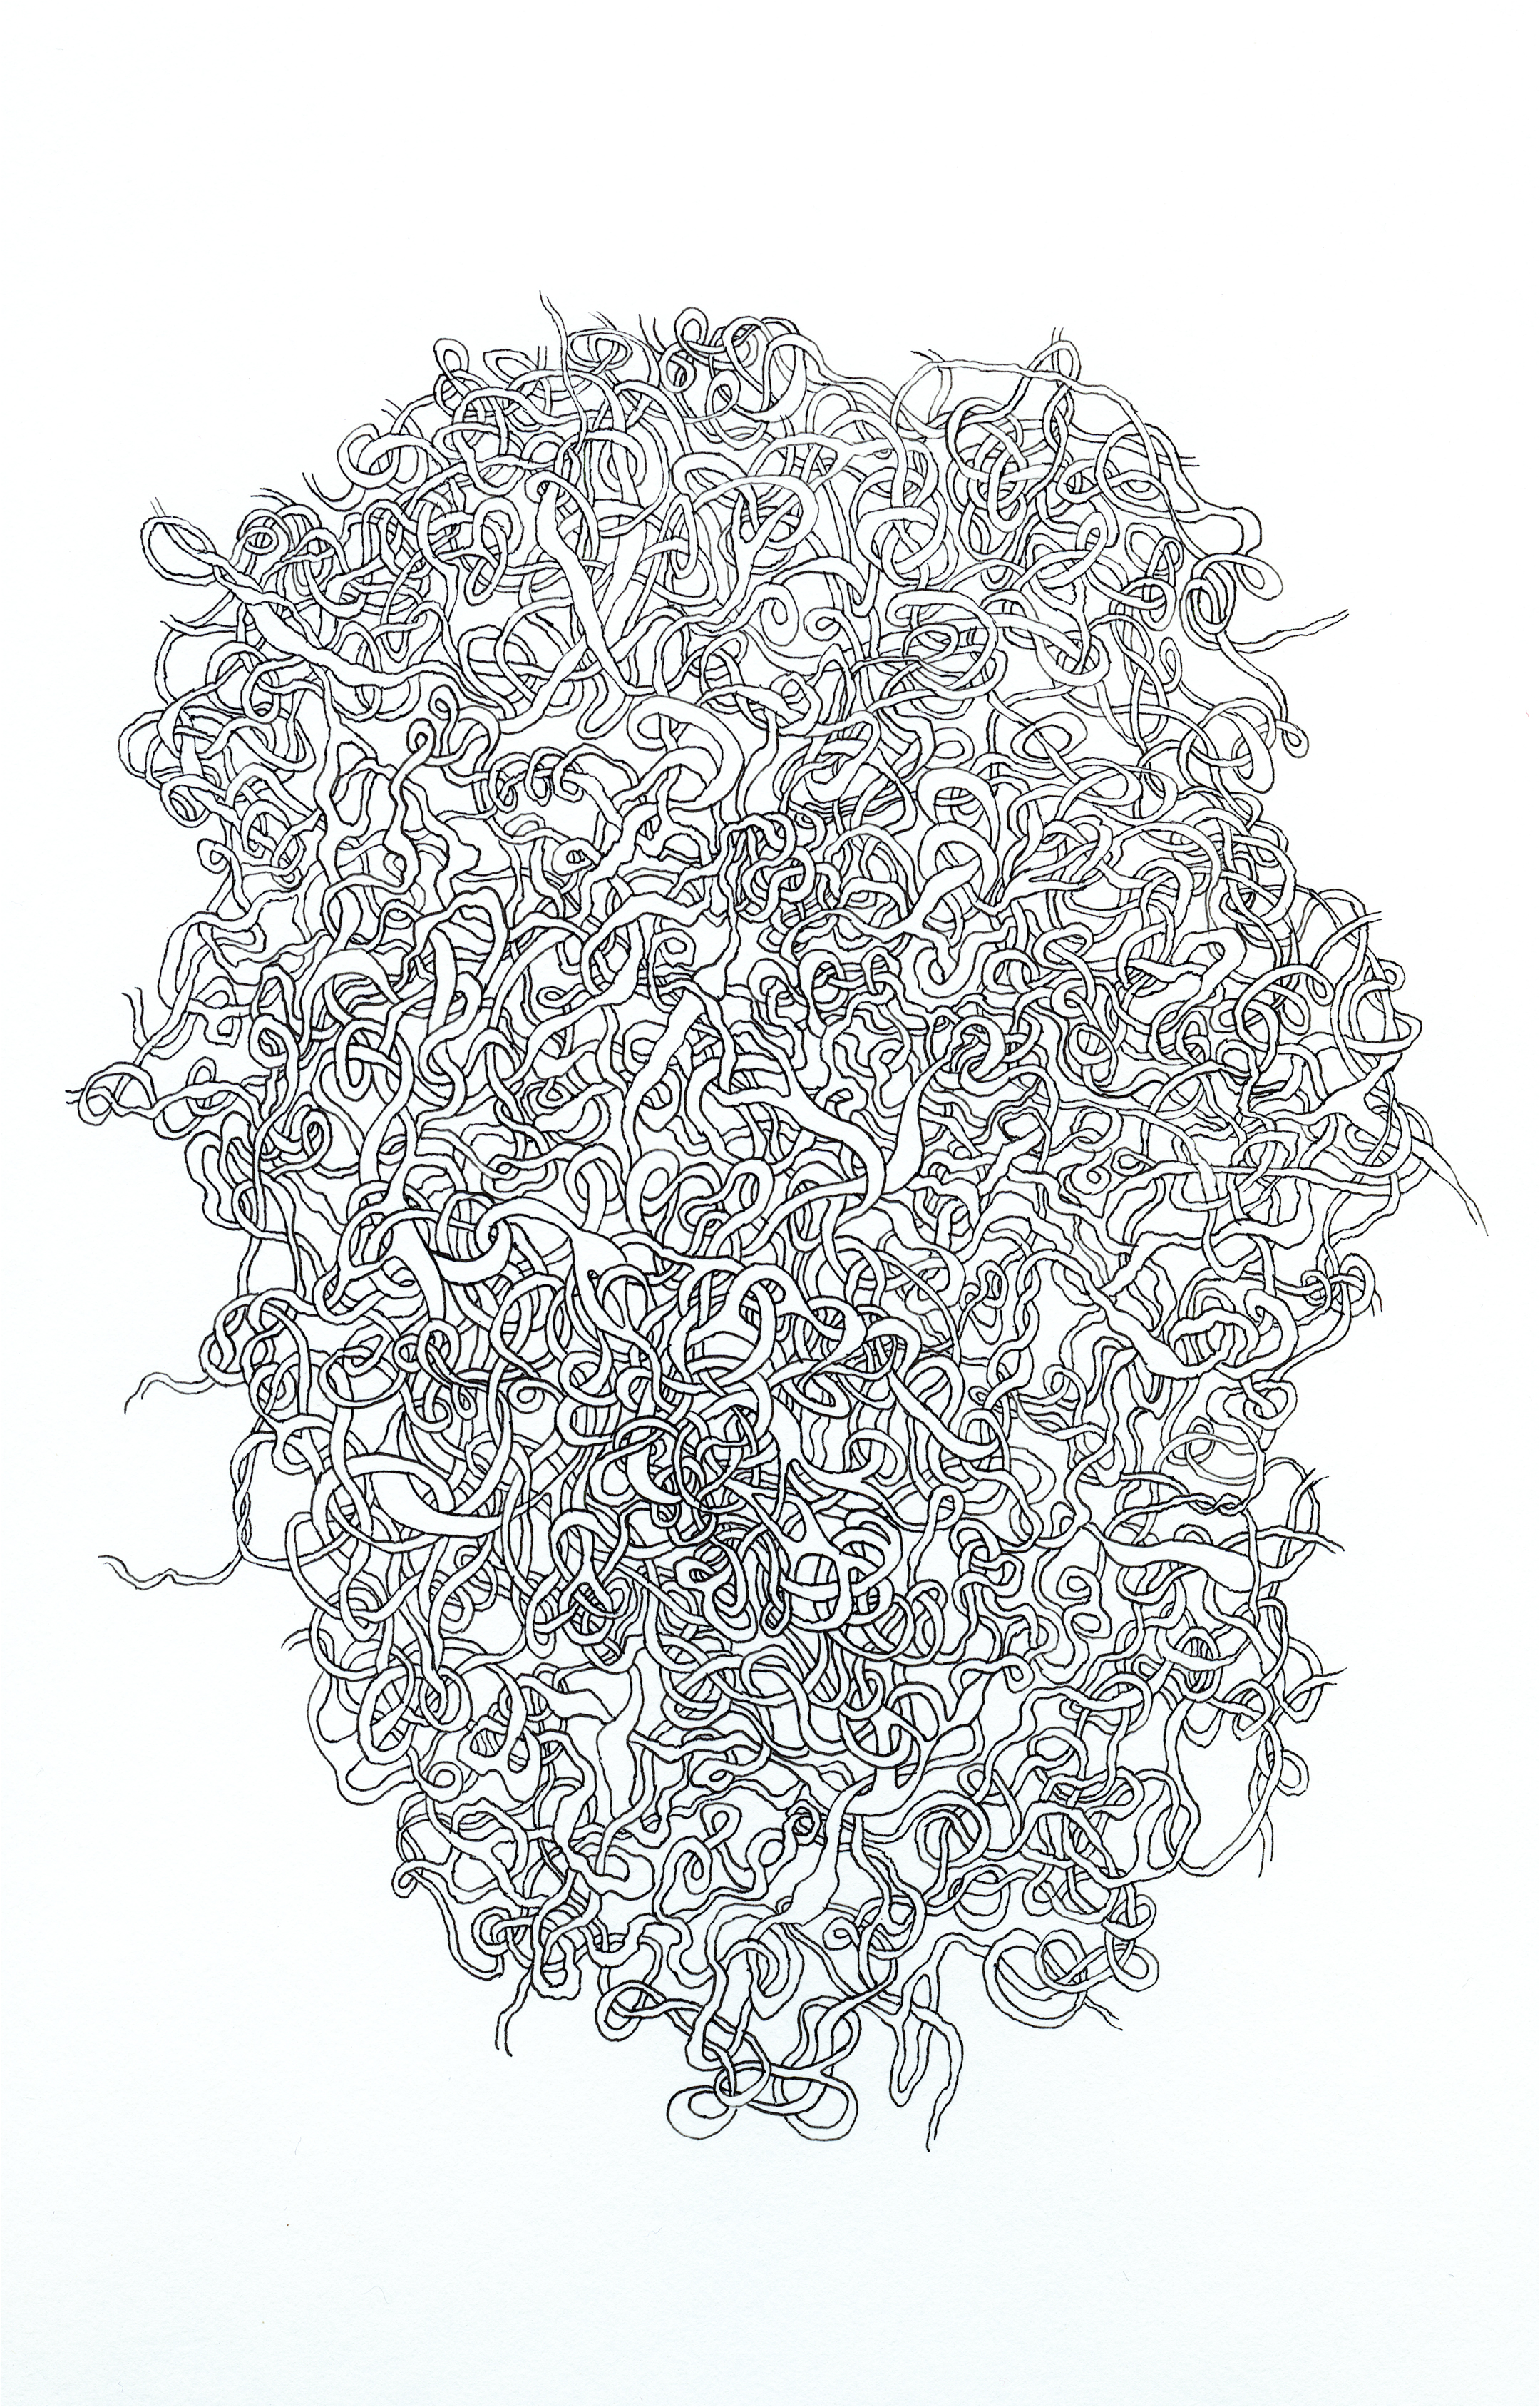 Beehive   pen and ink on paper  14 x 11 in.